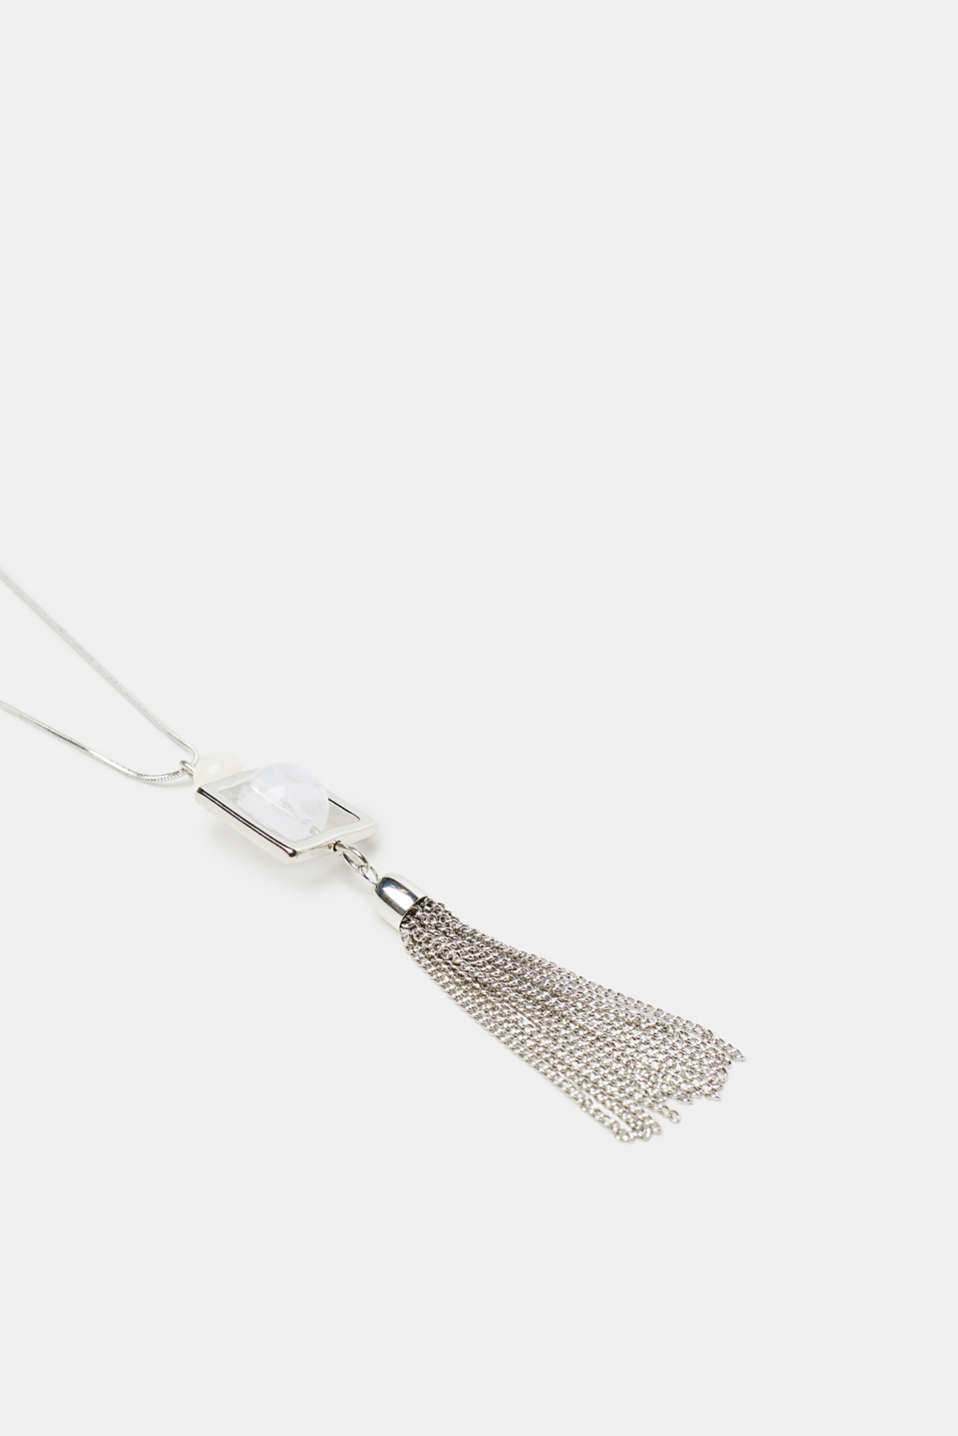 Necklace with a tassel pendant